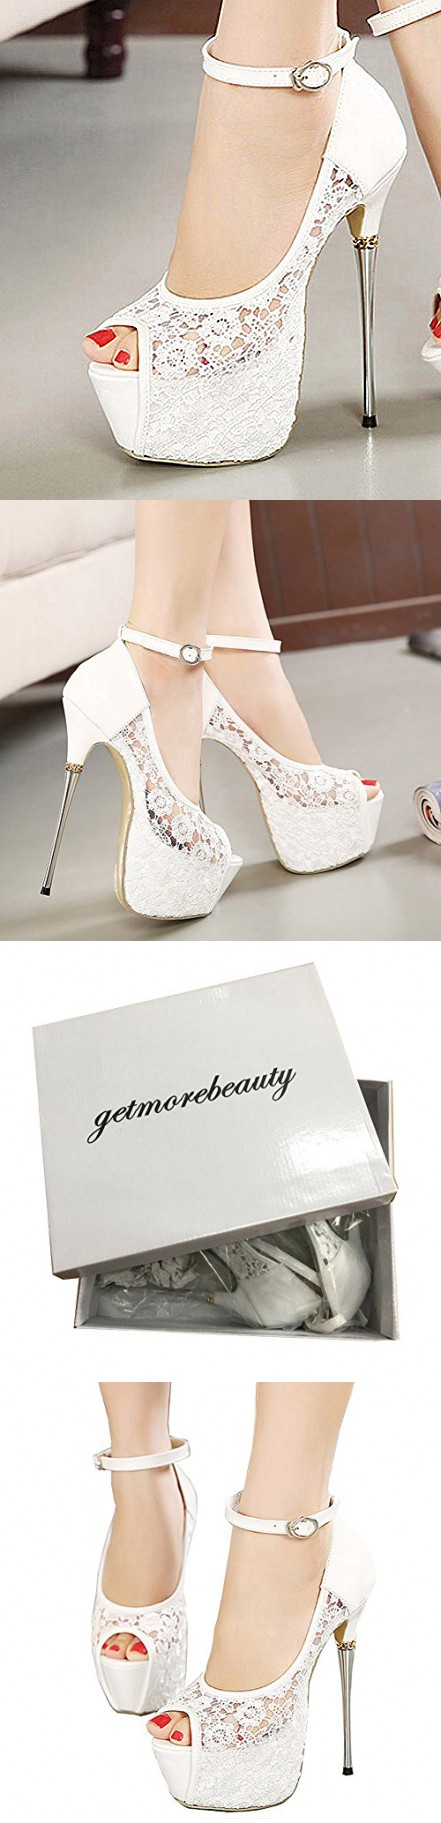 37812c44324 Getmorebeauty Women s White Lace Flower Strappy Hollow High Heels 5 B(M) US